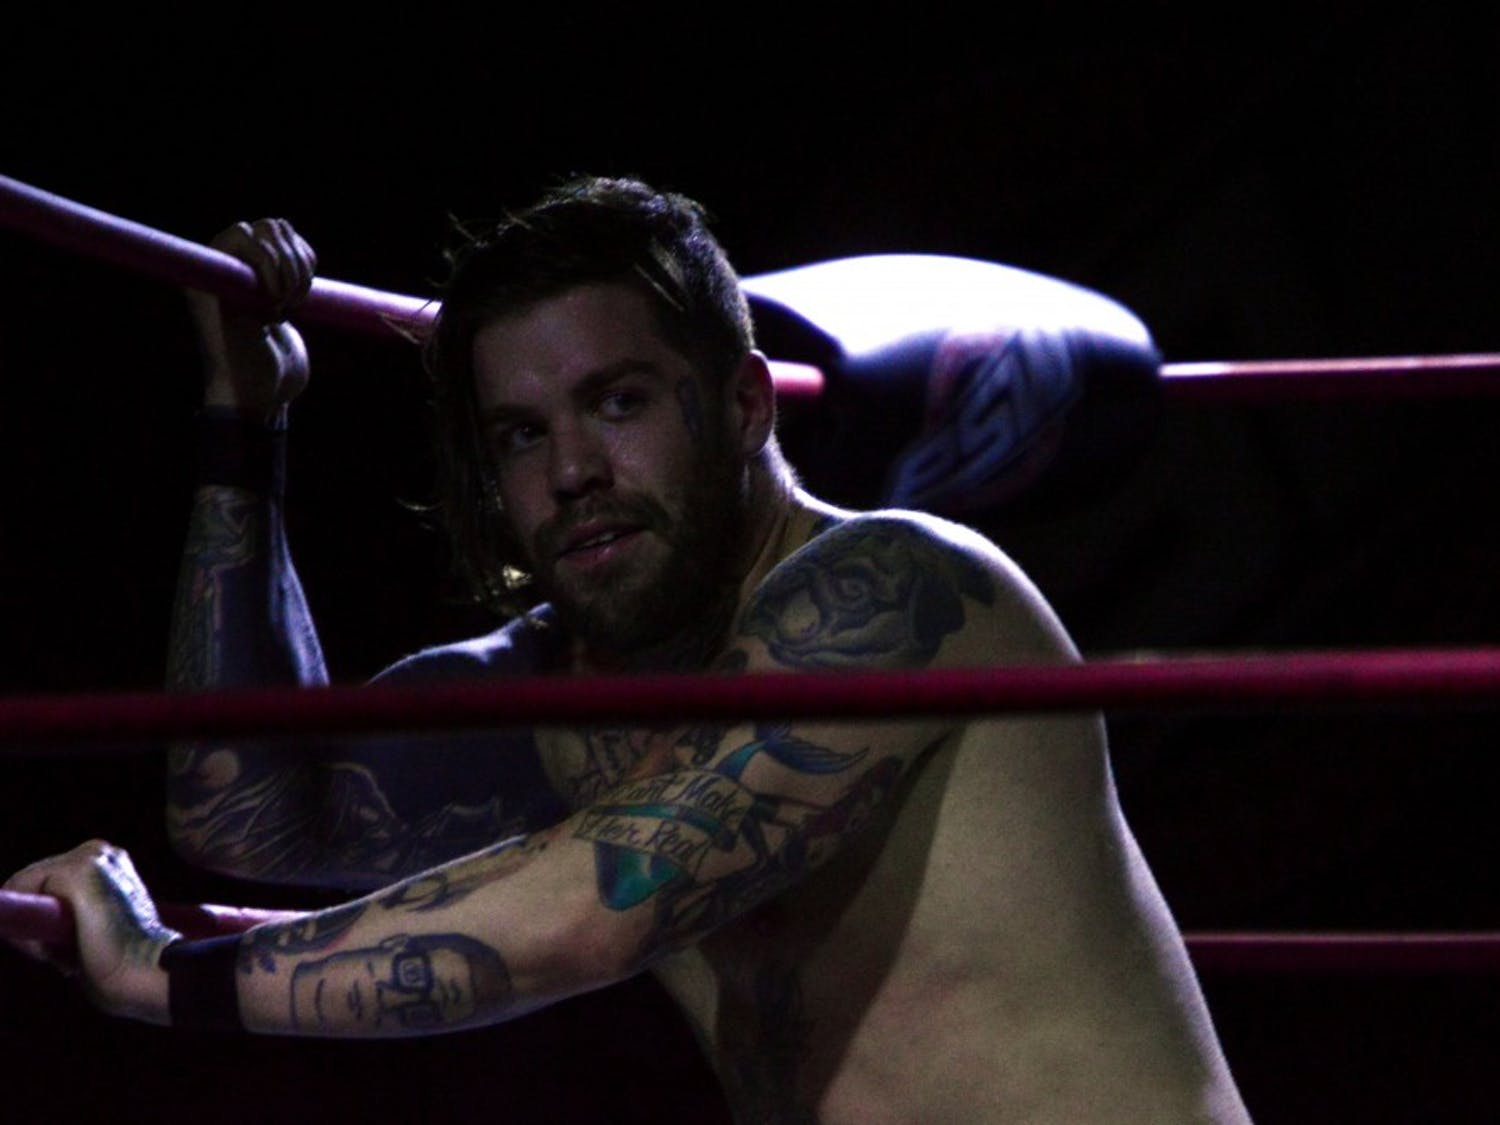 Kevin Lockwood pulls himself from the mat using the ring ropes. Lockwood is a naturally talented wrestler who wrestles for Smash Wrestling in Canada as Kevin Blackwood.